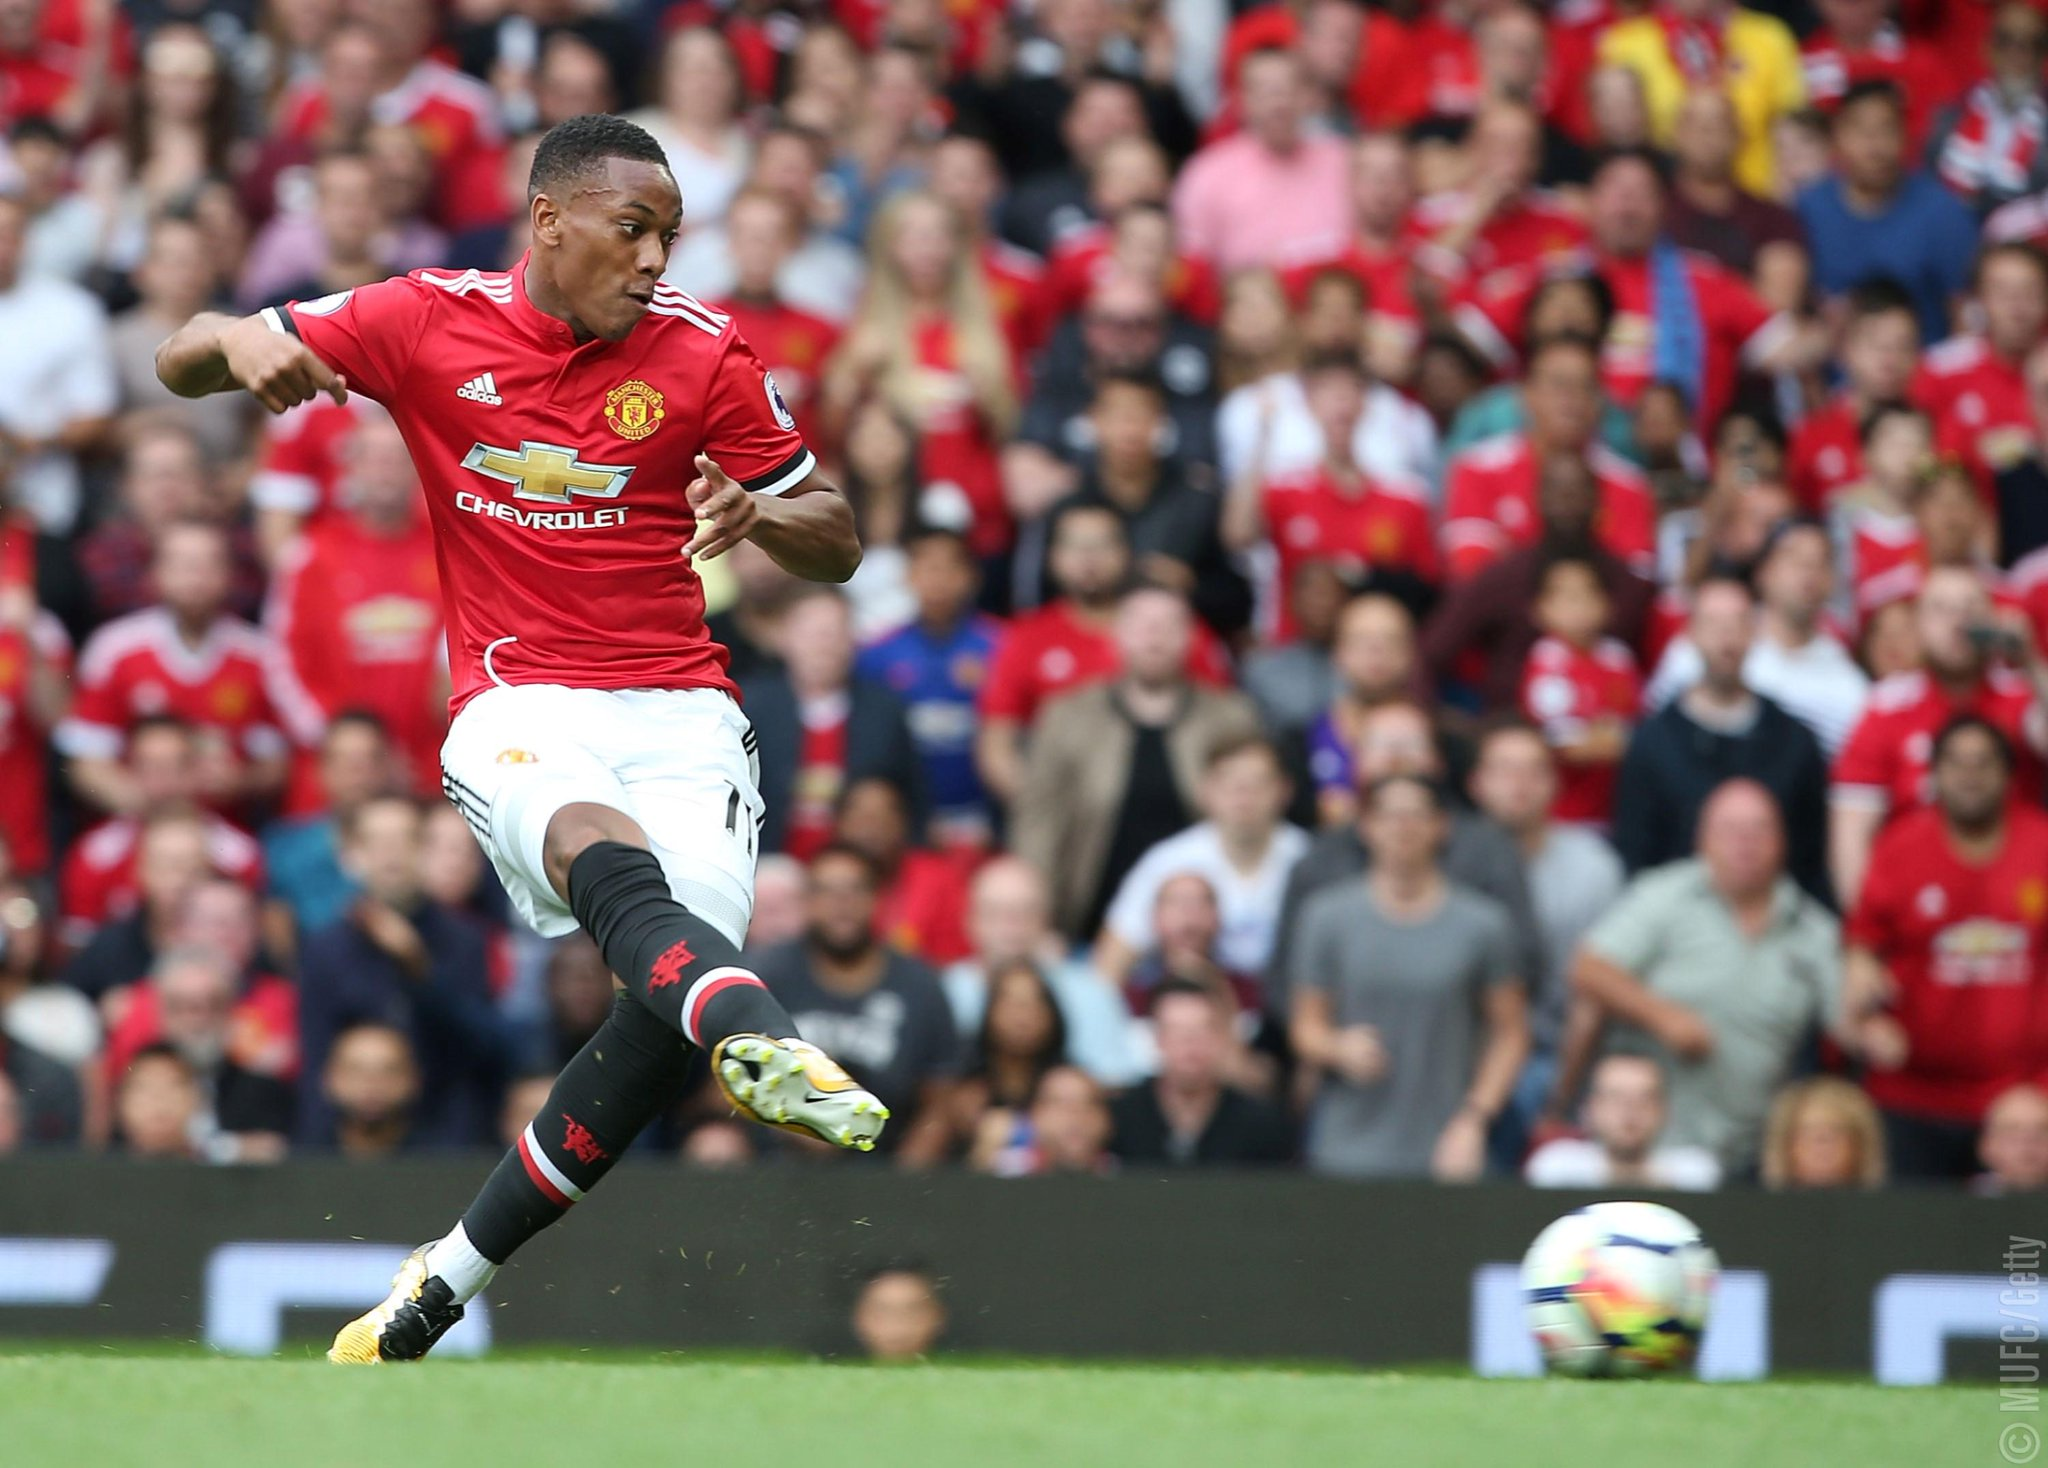 ����  @AnthonyMartial is targeting more silverware in the 2017/18 season: https://t.co/RsosooZpZB #MUFC https://t.co/VHUScmqTdi